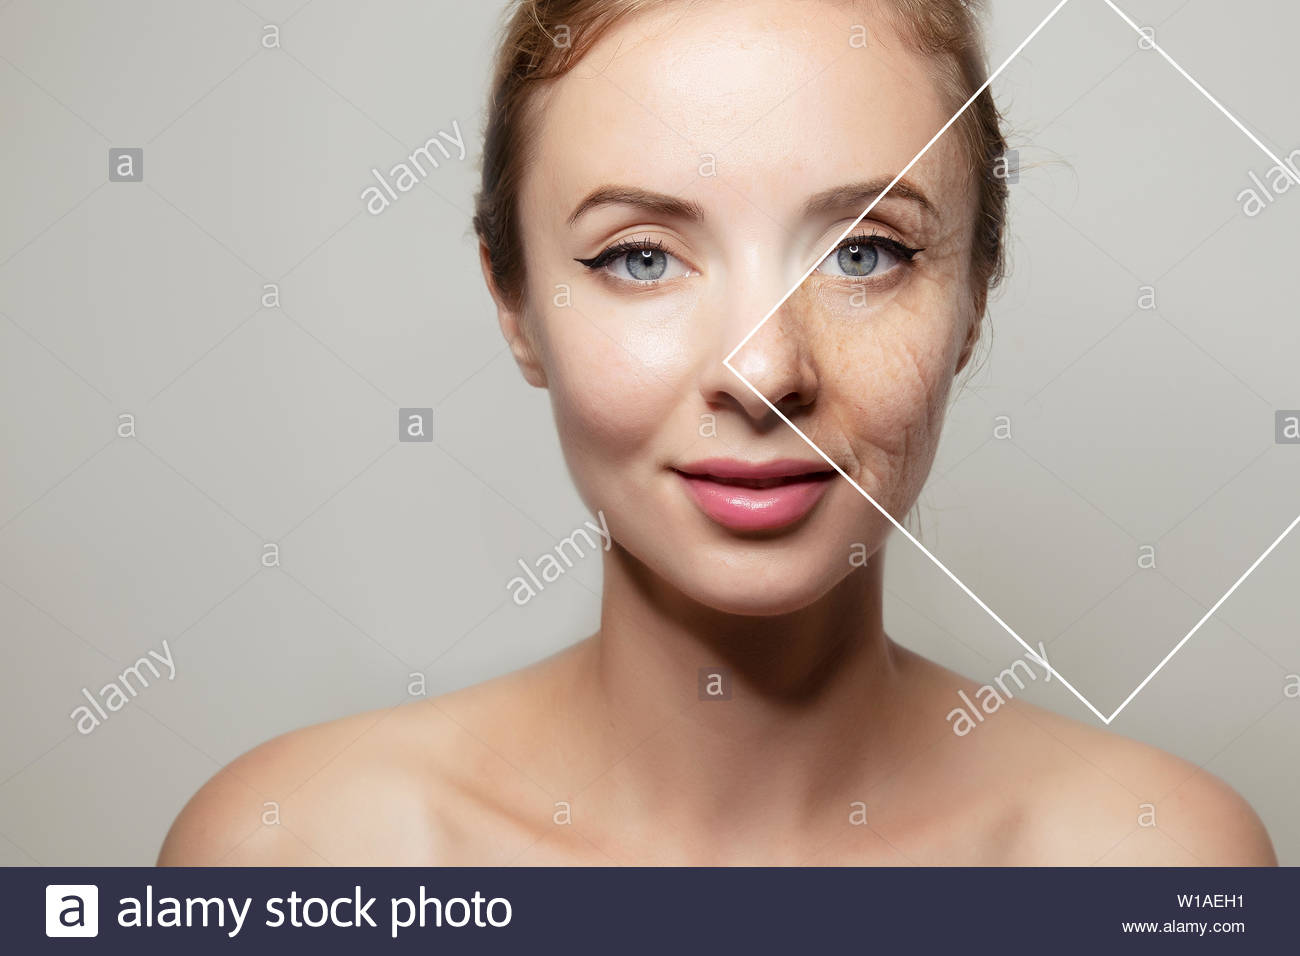 Health Supplement Female Face Anti Aging Beauty Cosmetics Banner Stock Photo Alamy